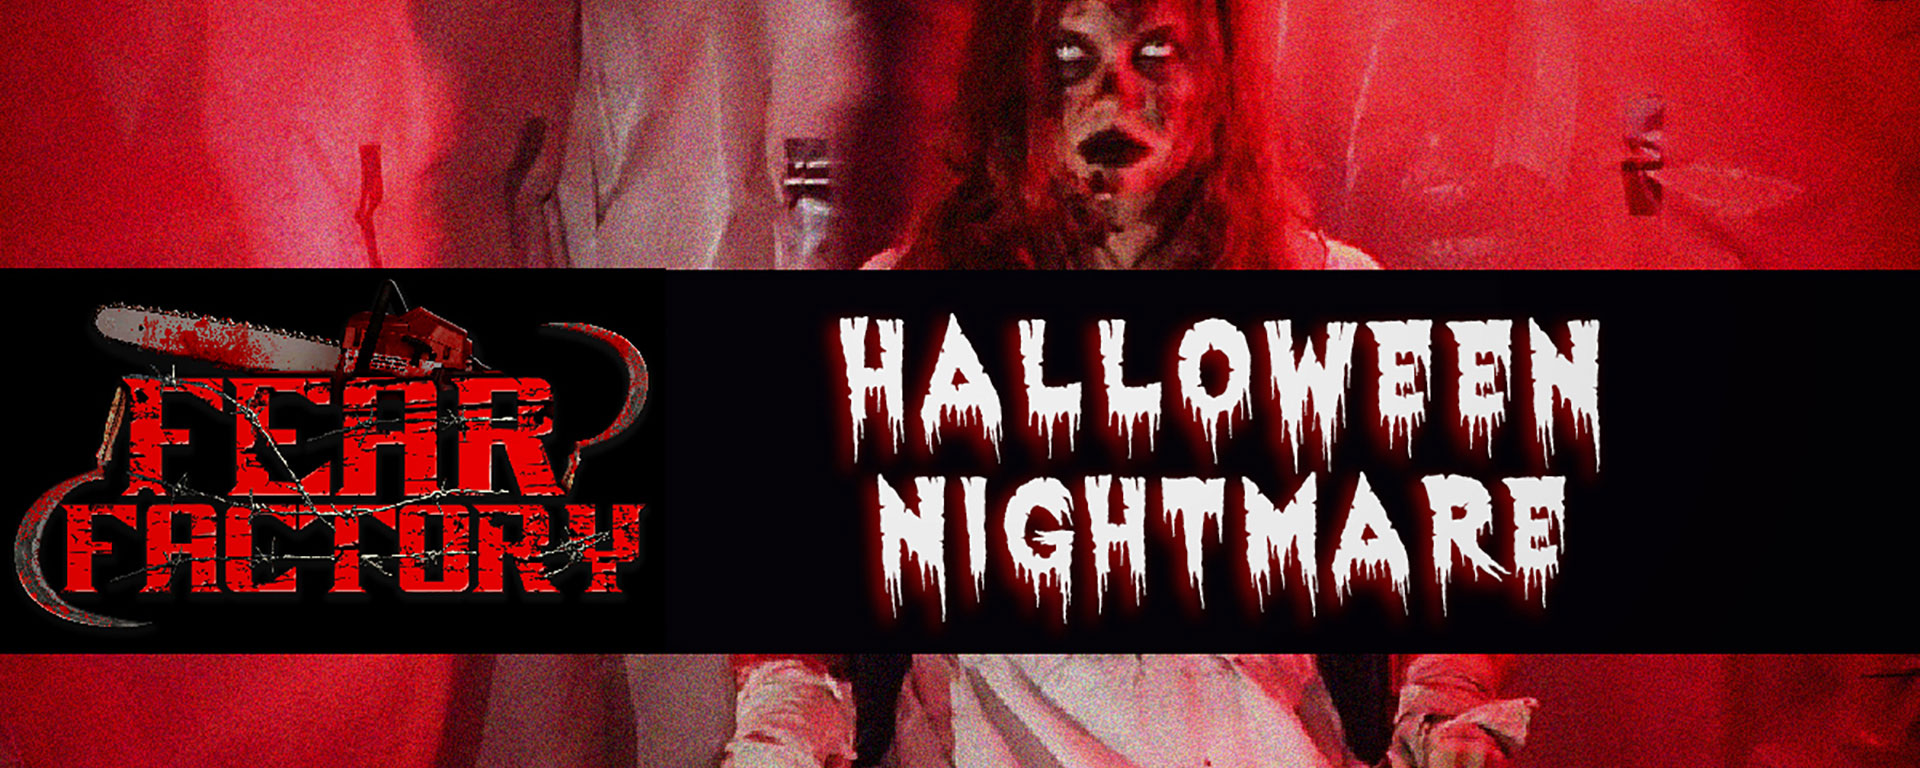 Link to event Fear Factory Halloween Nightmare